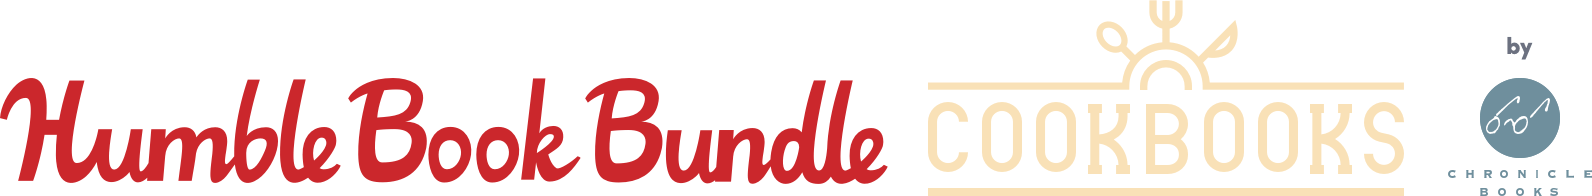 Humble Book Bundle: Cookbooks by Chronicle Books